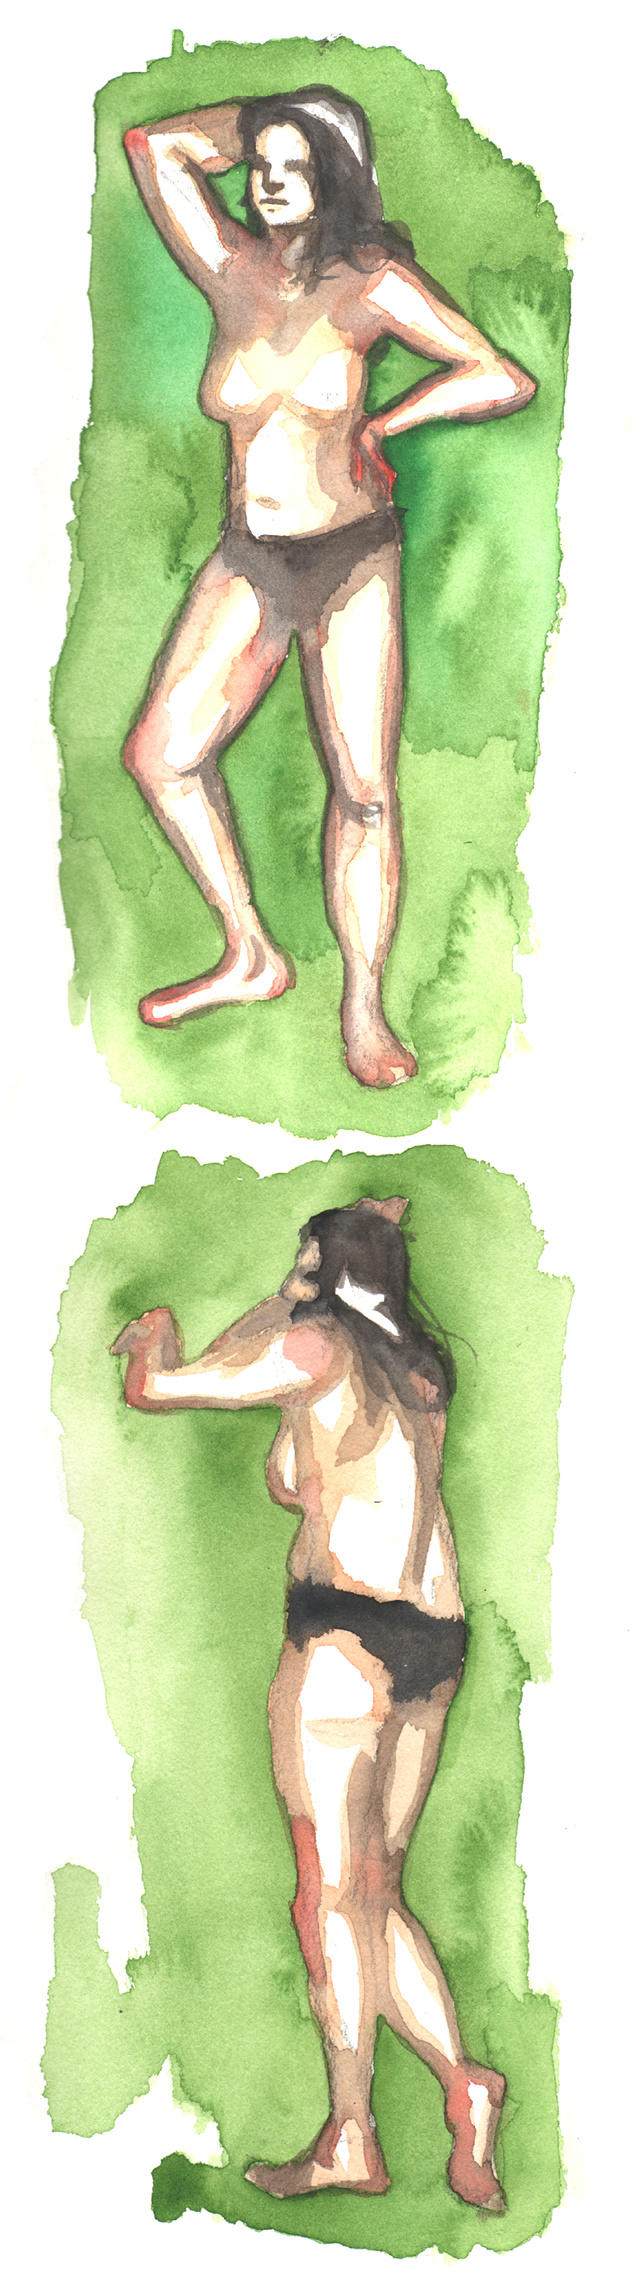 Watercolor practice